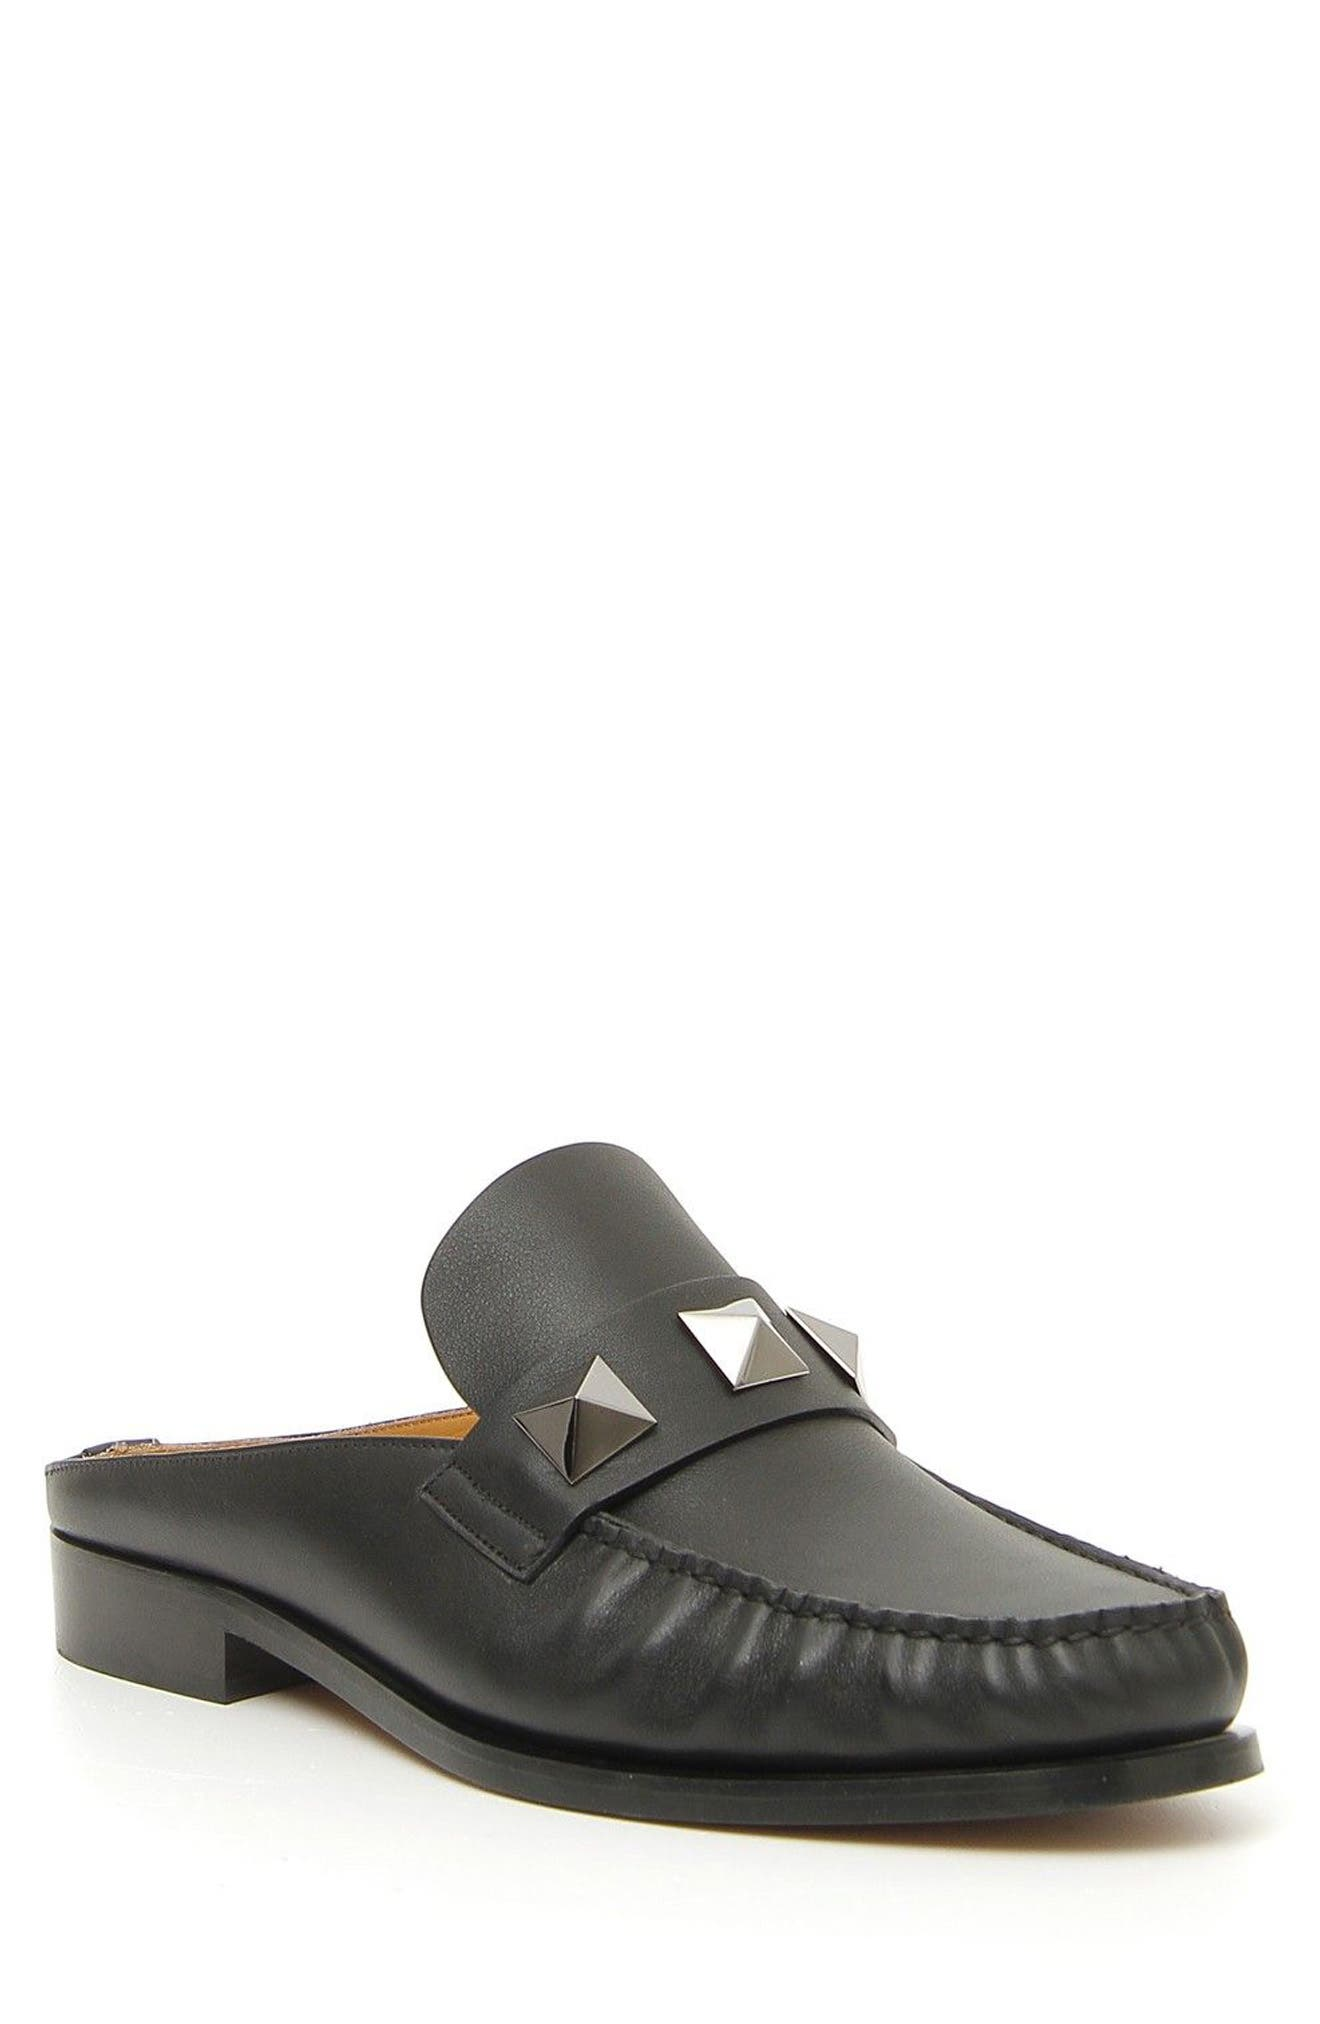 Lock Loafer Mule,                             Main thumbnail 1, color,                             Nero